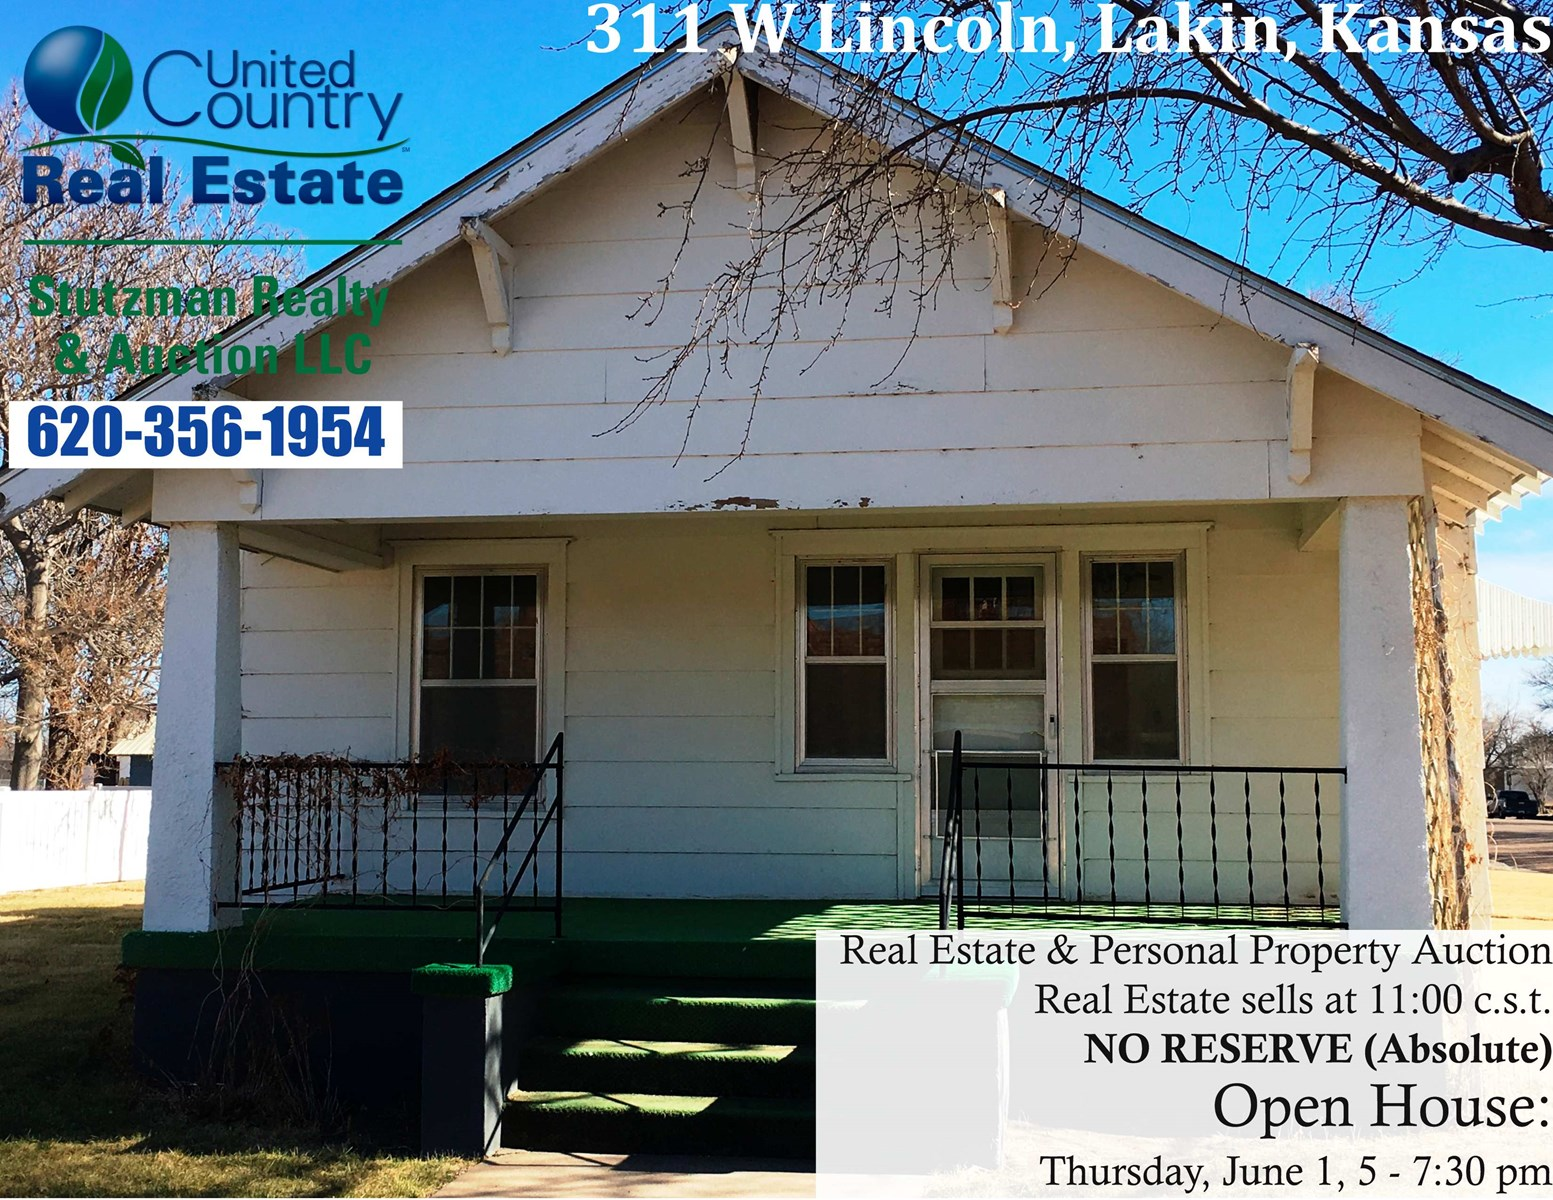 ABSOLUTE  AUCTION - RESIDENCE and ESTATE, LAKIN, KANSAS